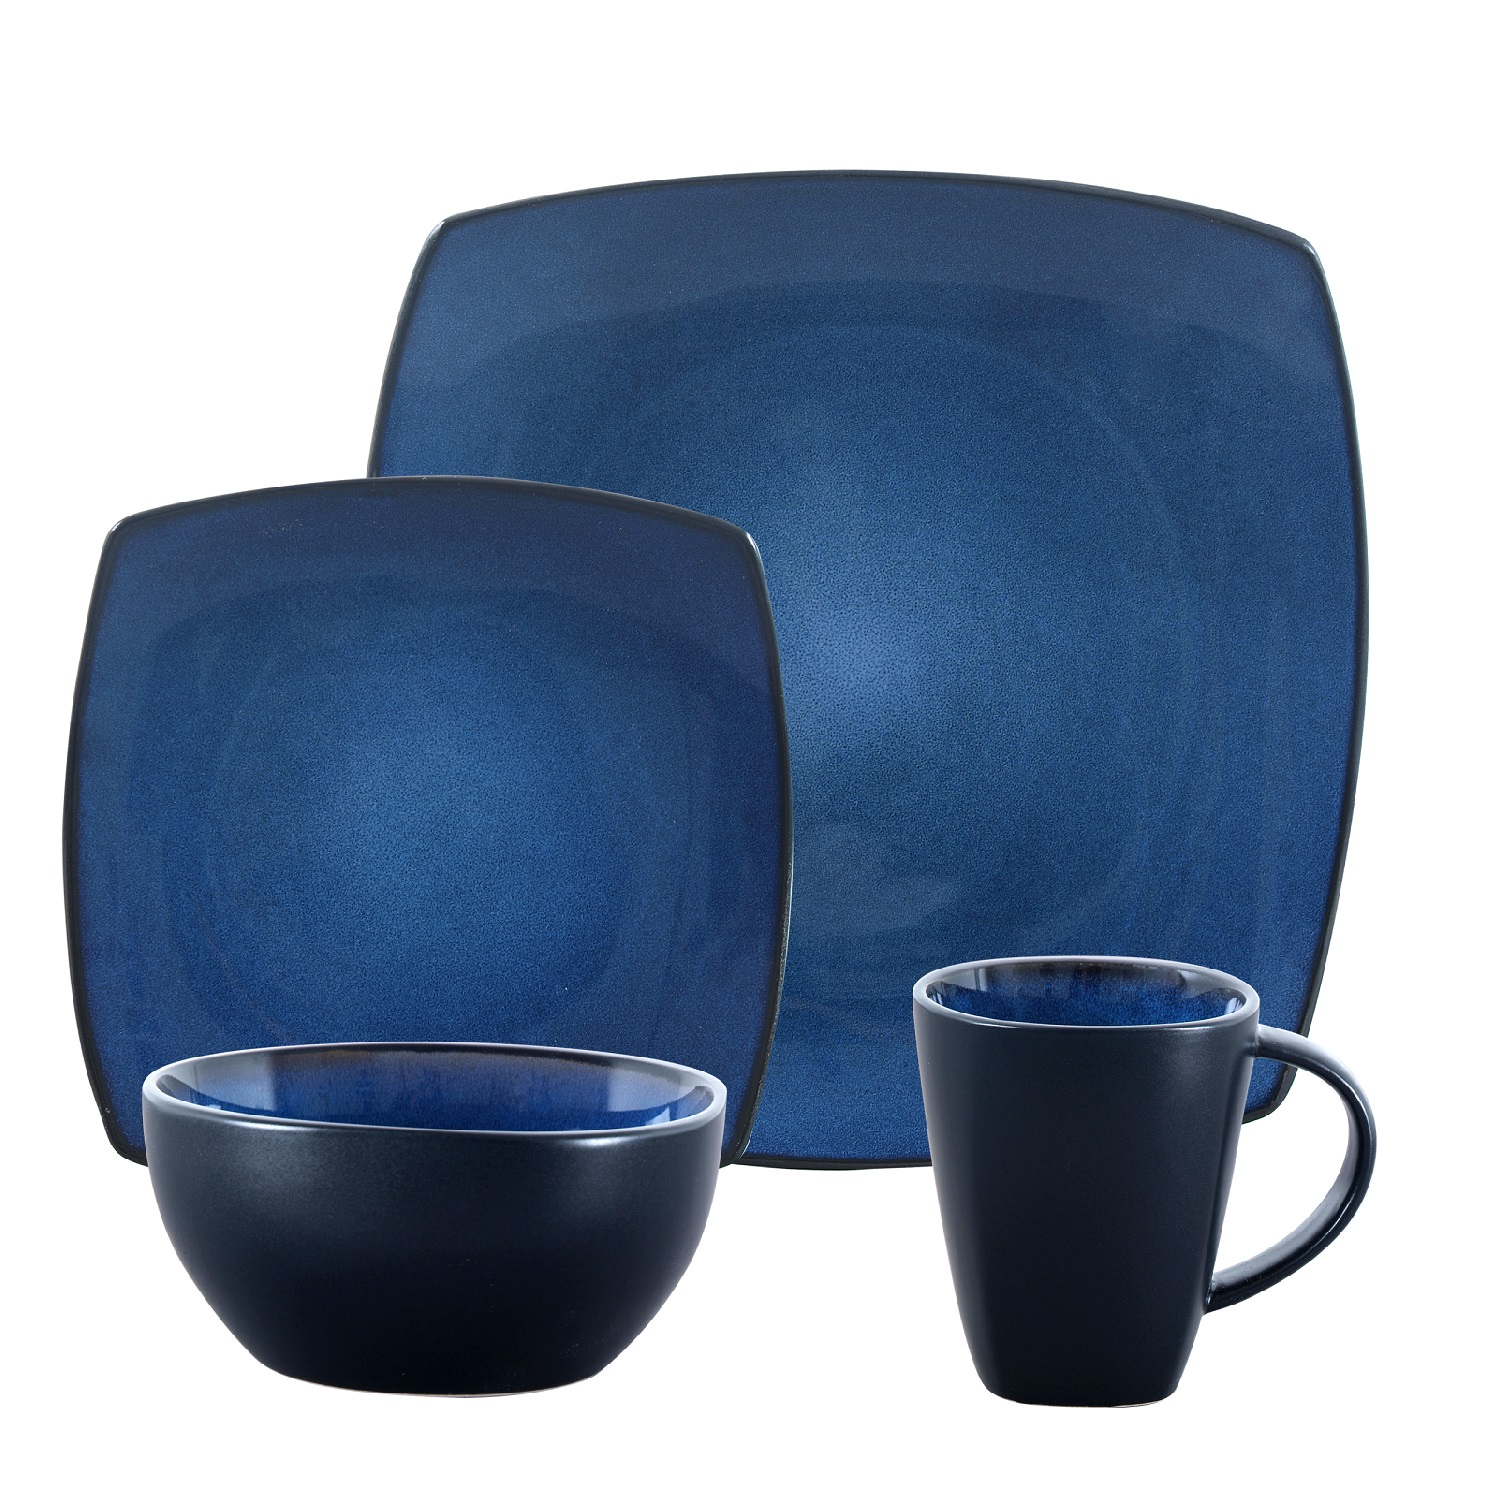 Gibson Home Soho Lounge Square Blue Dinnerware Set, 16 Piece